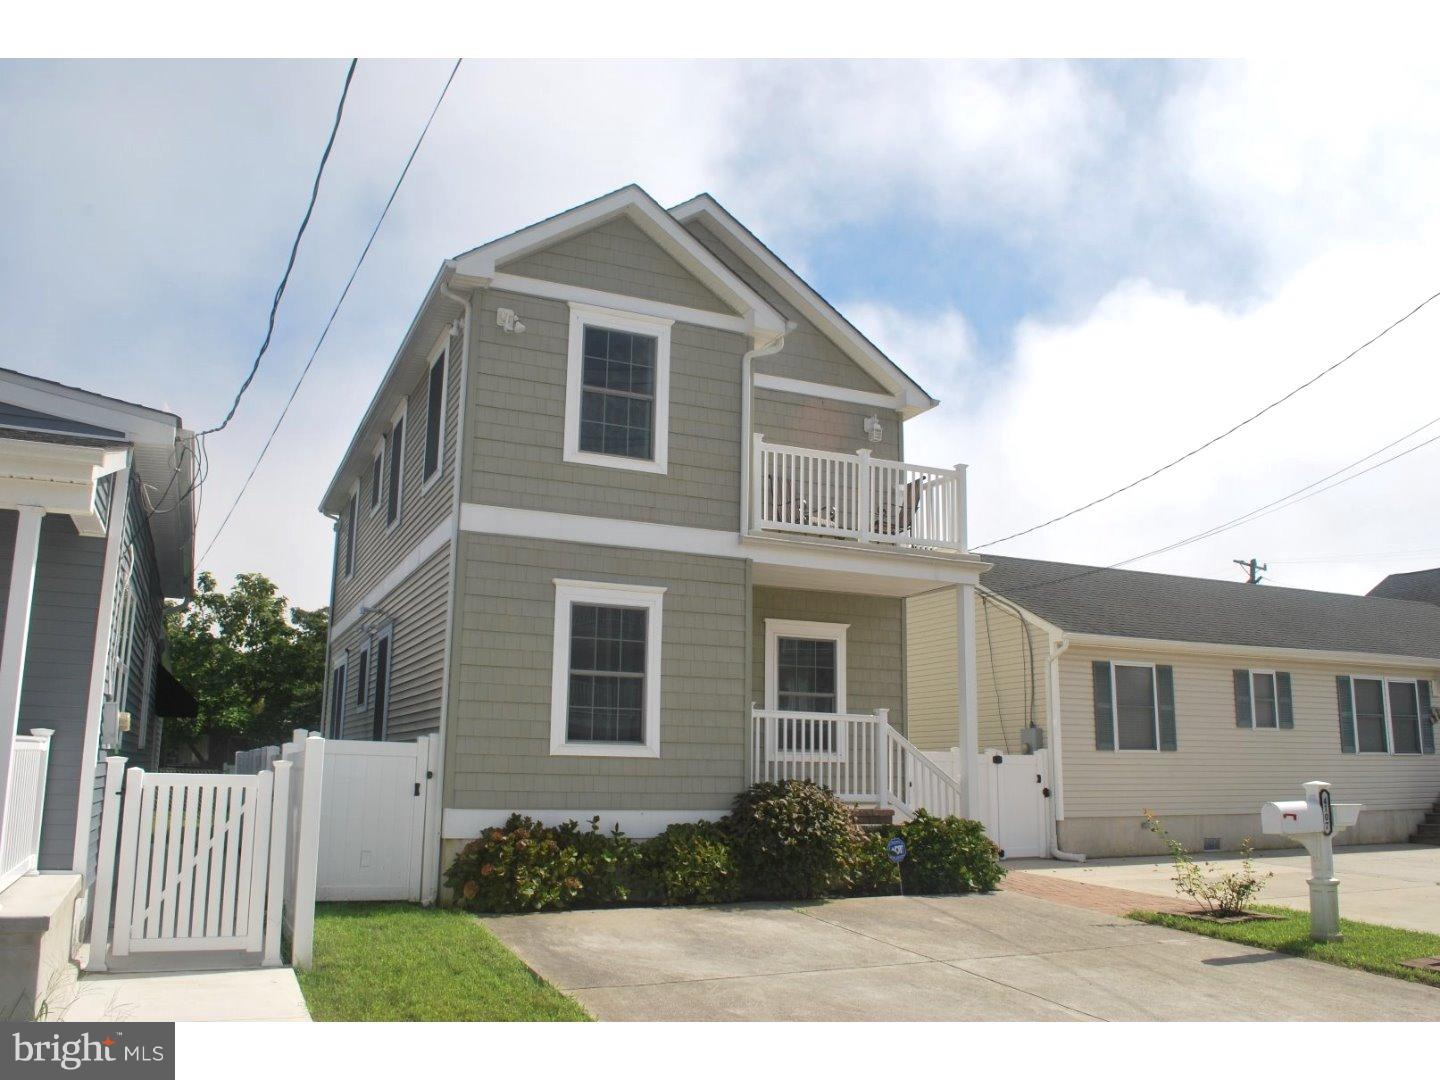 Single Family Home for Sale at 4107 ARCTIC Avenue Wildwood, New Jersey 08260 United States